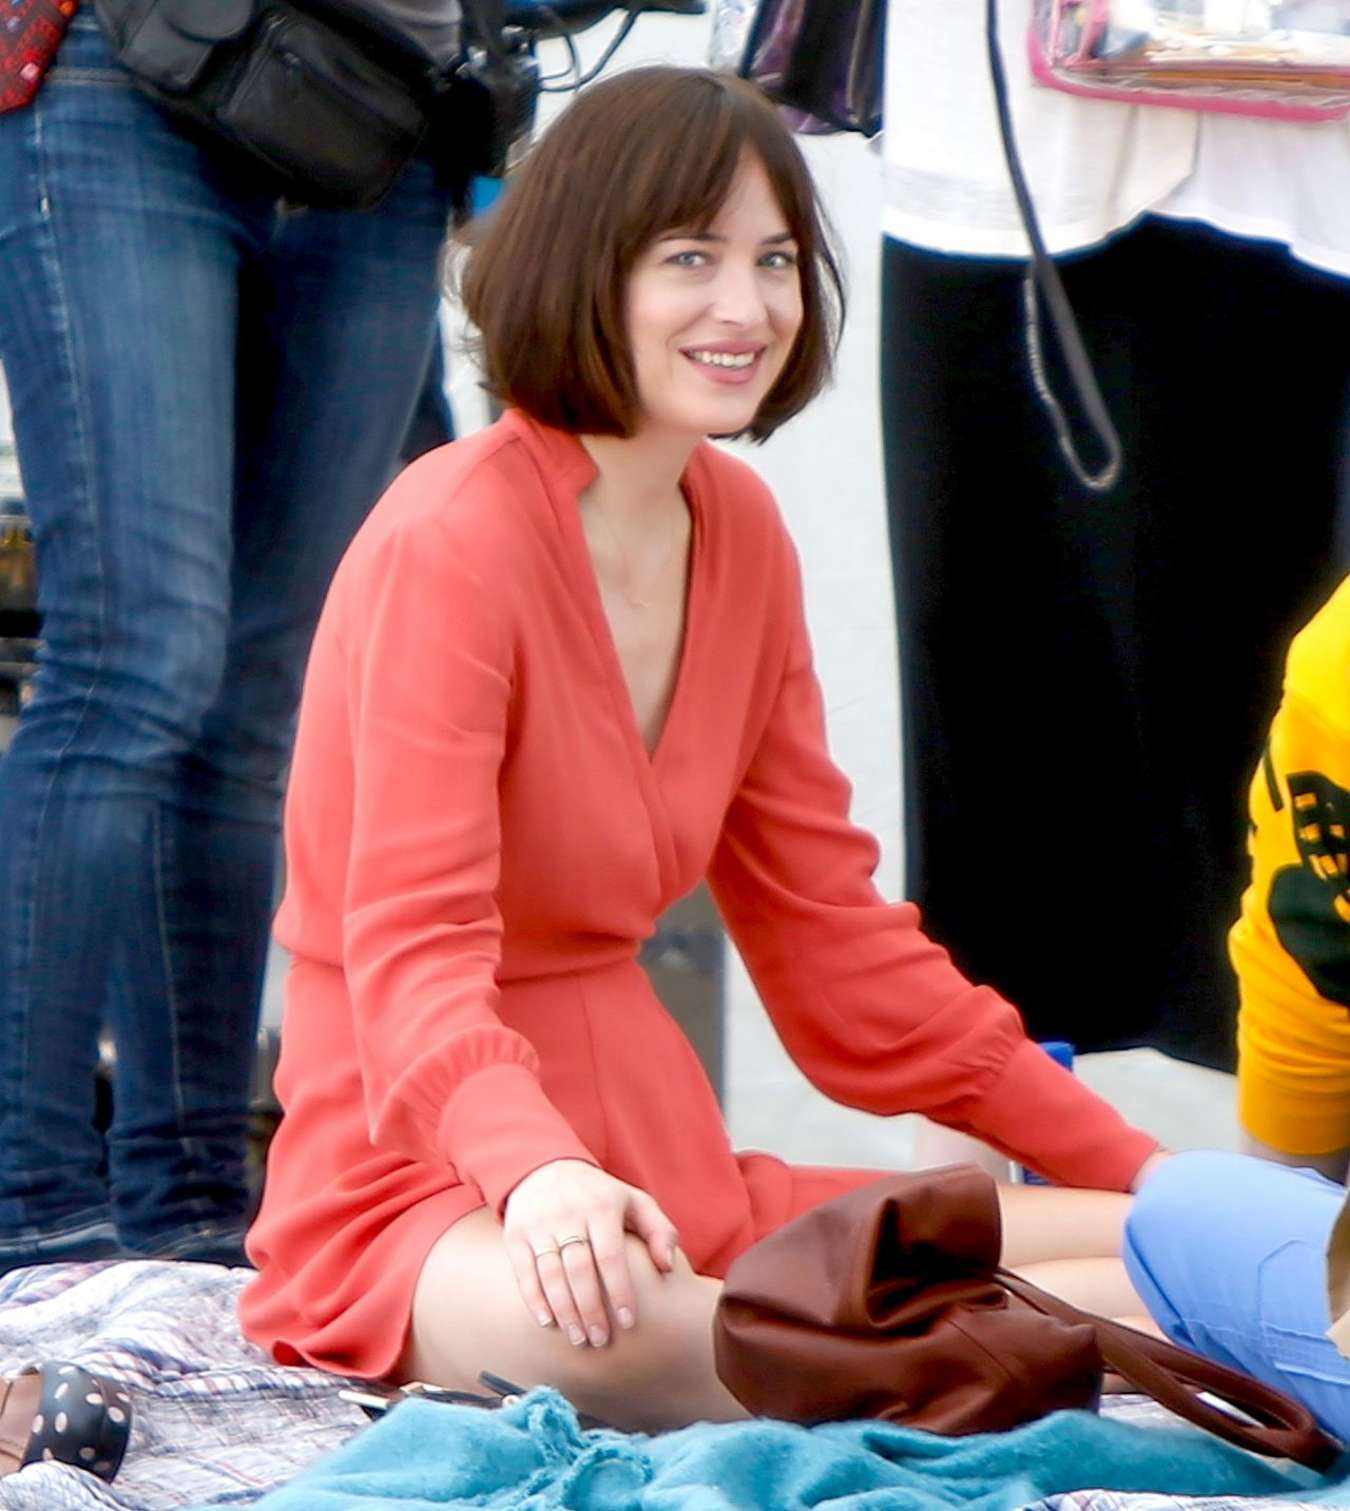 Dakota johnson in red dress on how to be single set 42 gotceleb dakota johnson in red dress on how to be single set 42 ccuart Choice Image